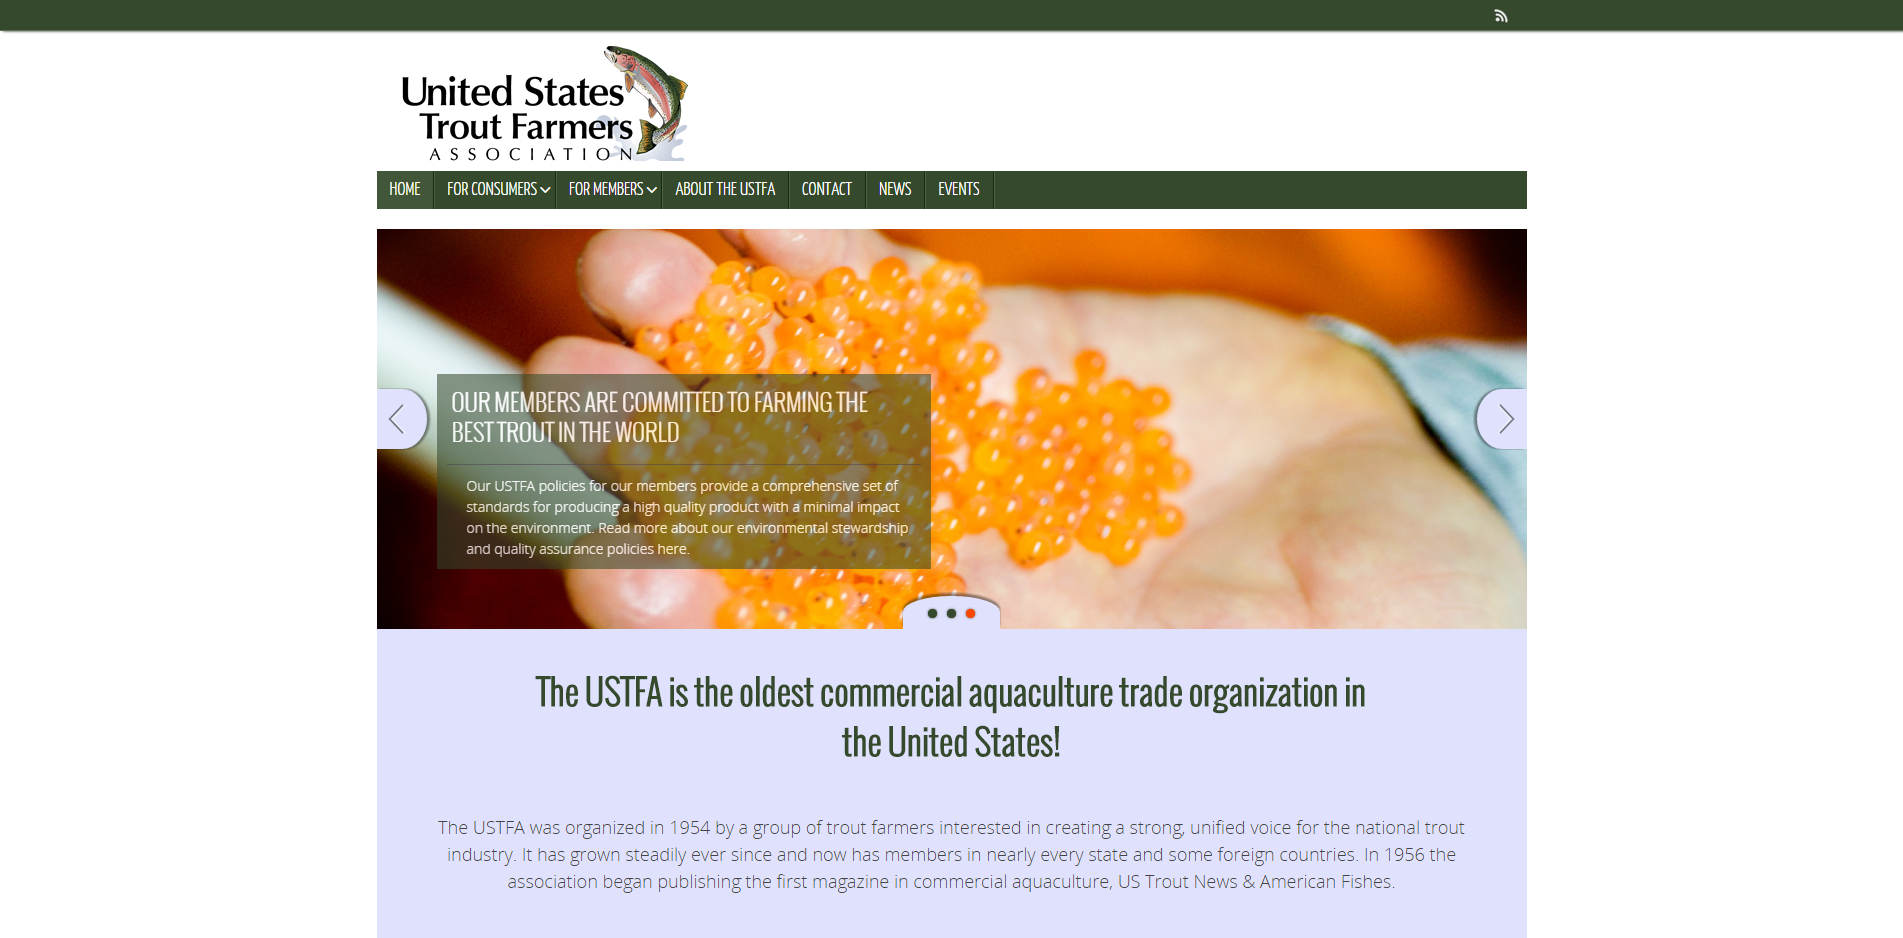 United States Trout Farmers Association